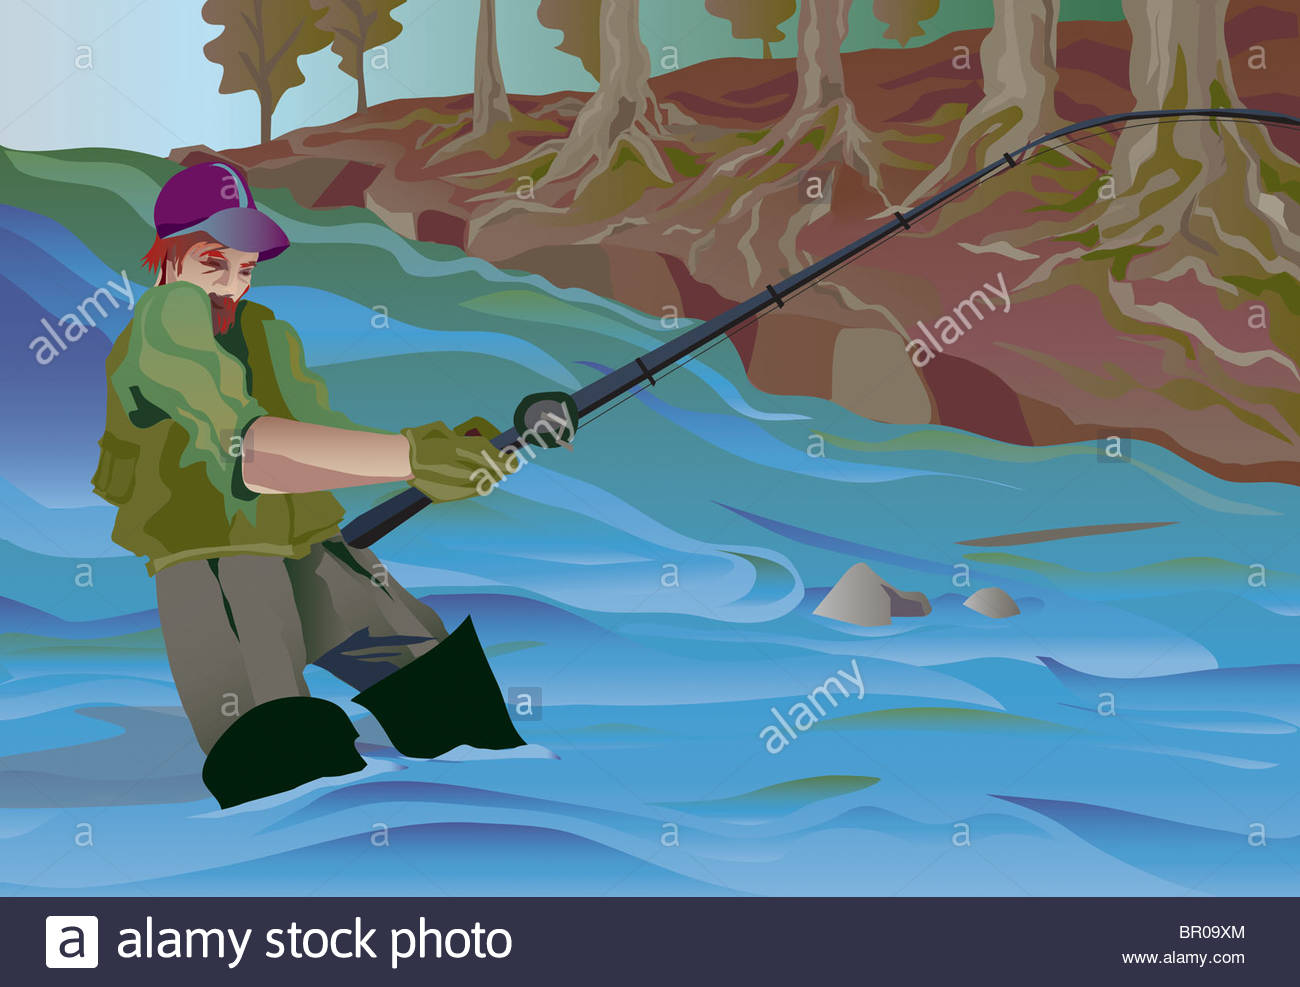 1300x987 A Drawing Of A Man Fishing Alone In The Jungles Stock Photo